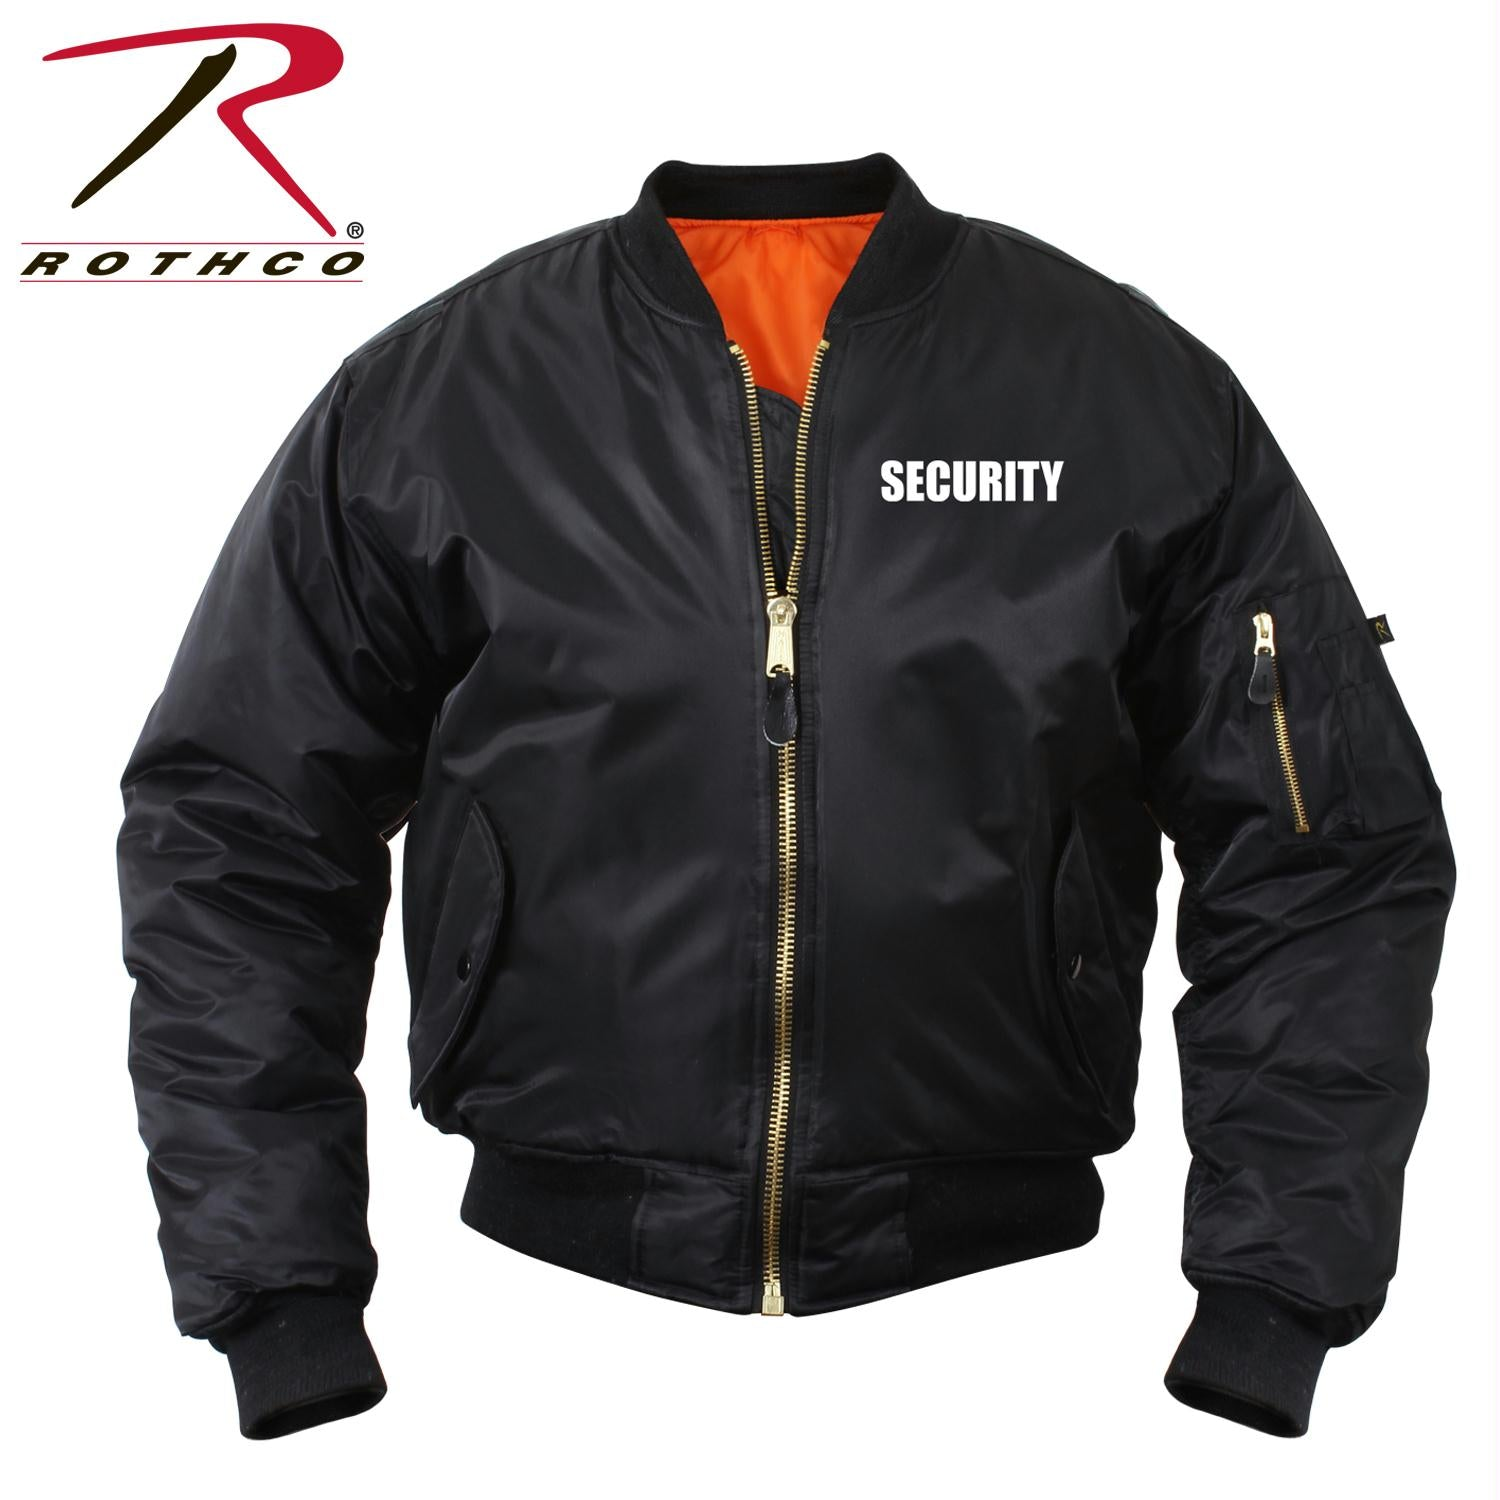 Rothco MA-1 Flight Jacket With Security Print - XL